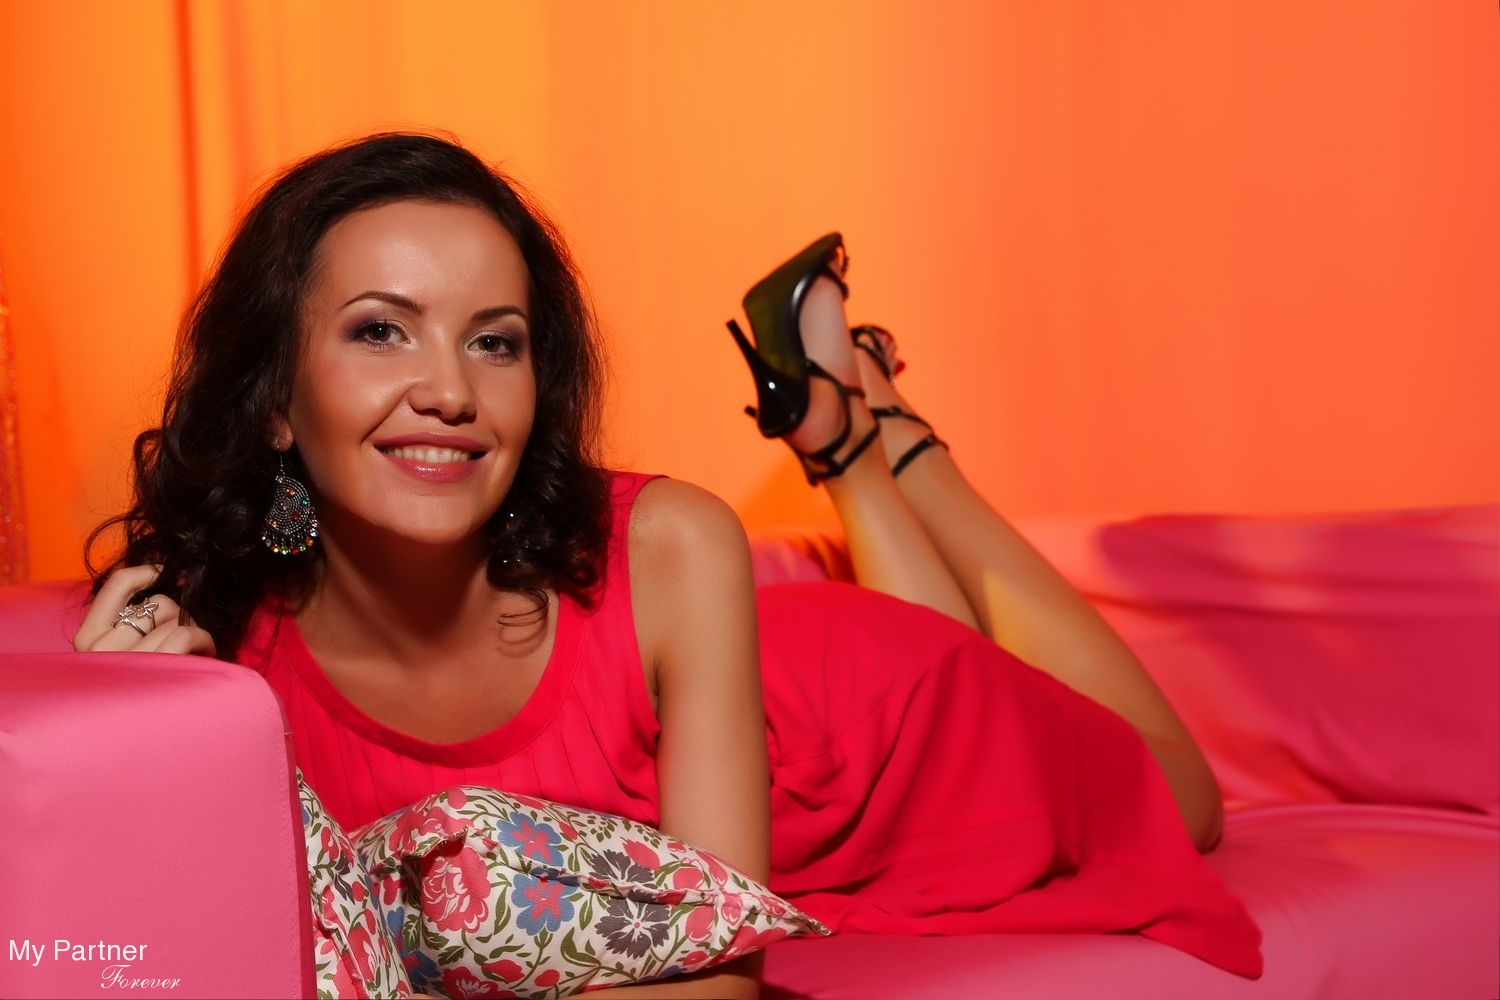 International Dating Site to Meet Ekaterina from Novosibirsk, Russia